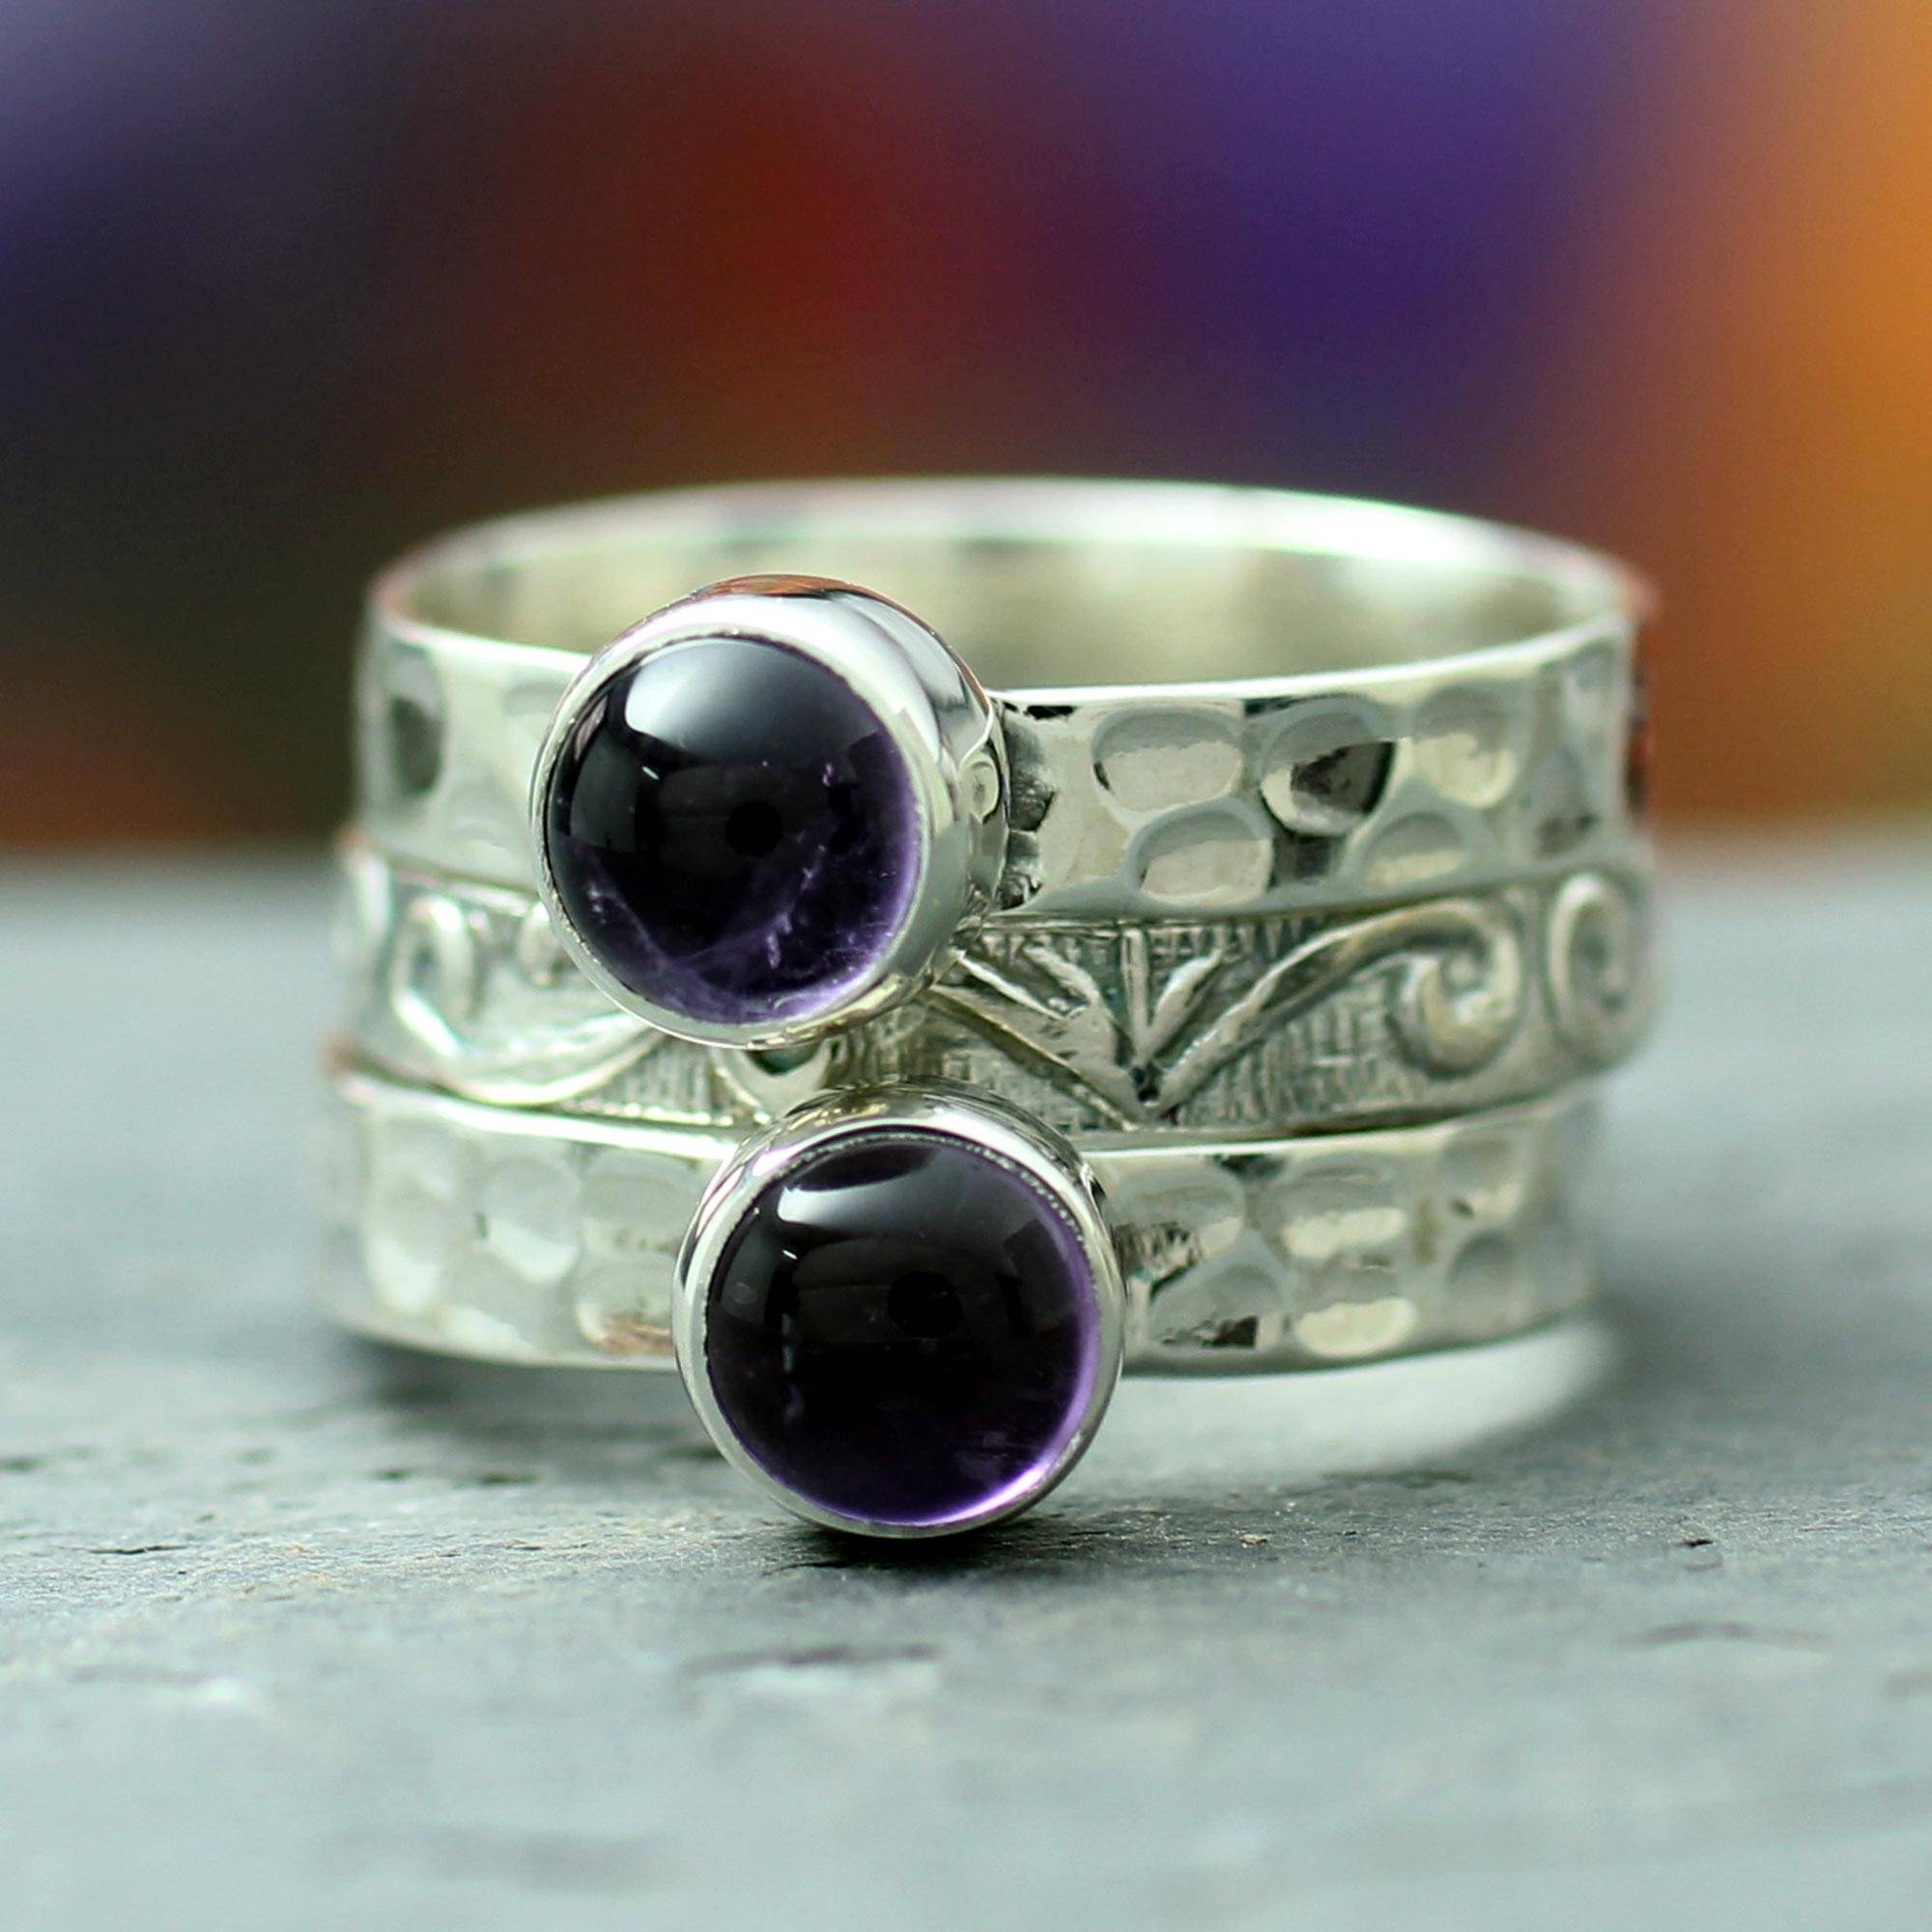 Unicef uk market amethyst with sterling silver